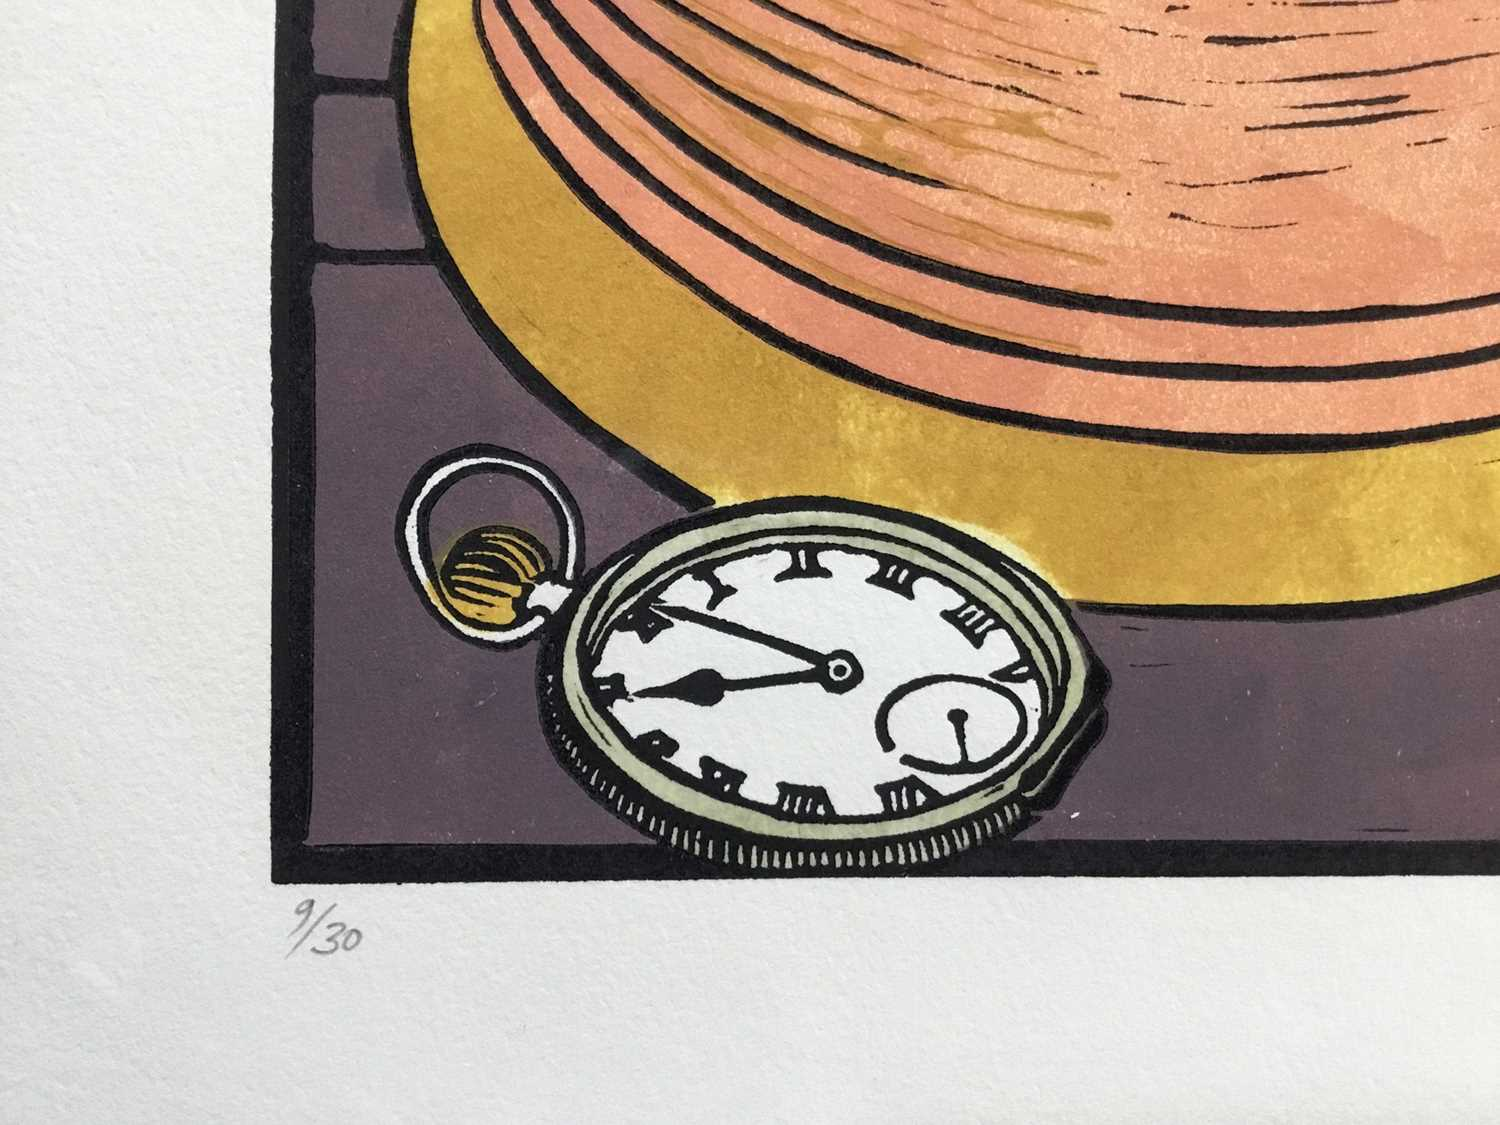 Penny Berry Paterson (1941-2021) coloured linocut print, Night Passage, signed and numbered 1/30, 33 - Image 4 of 4